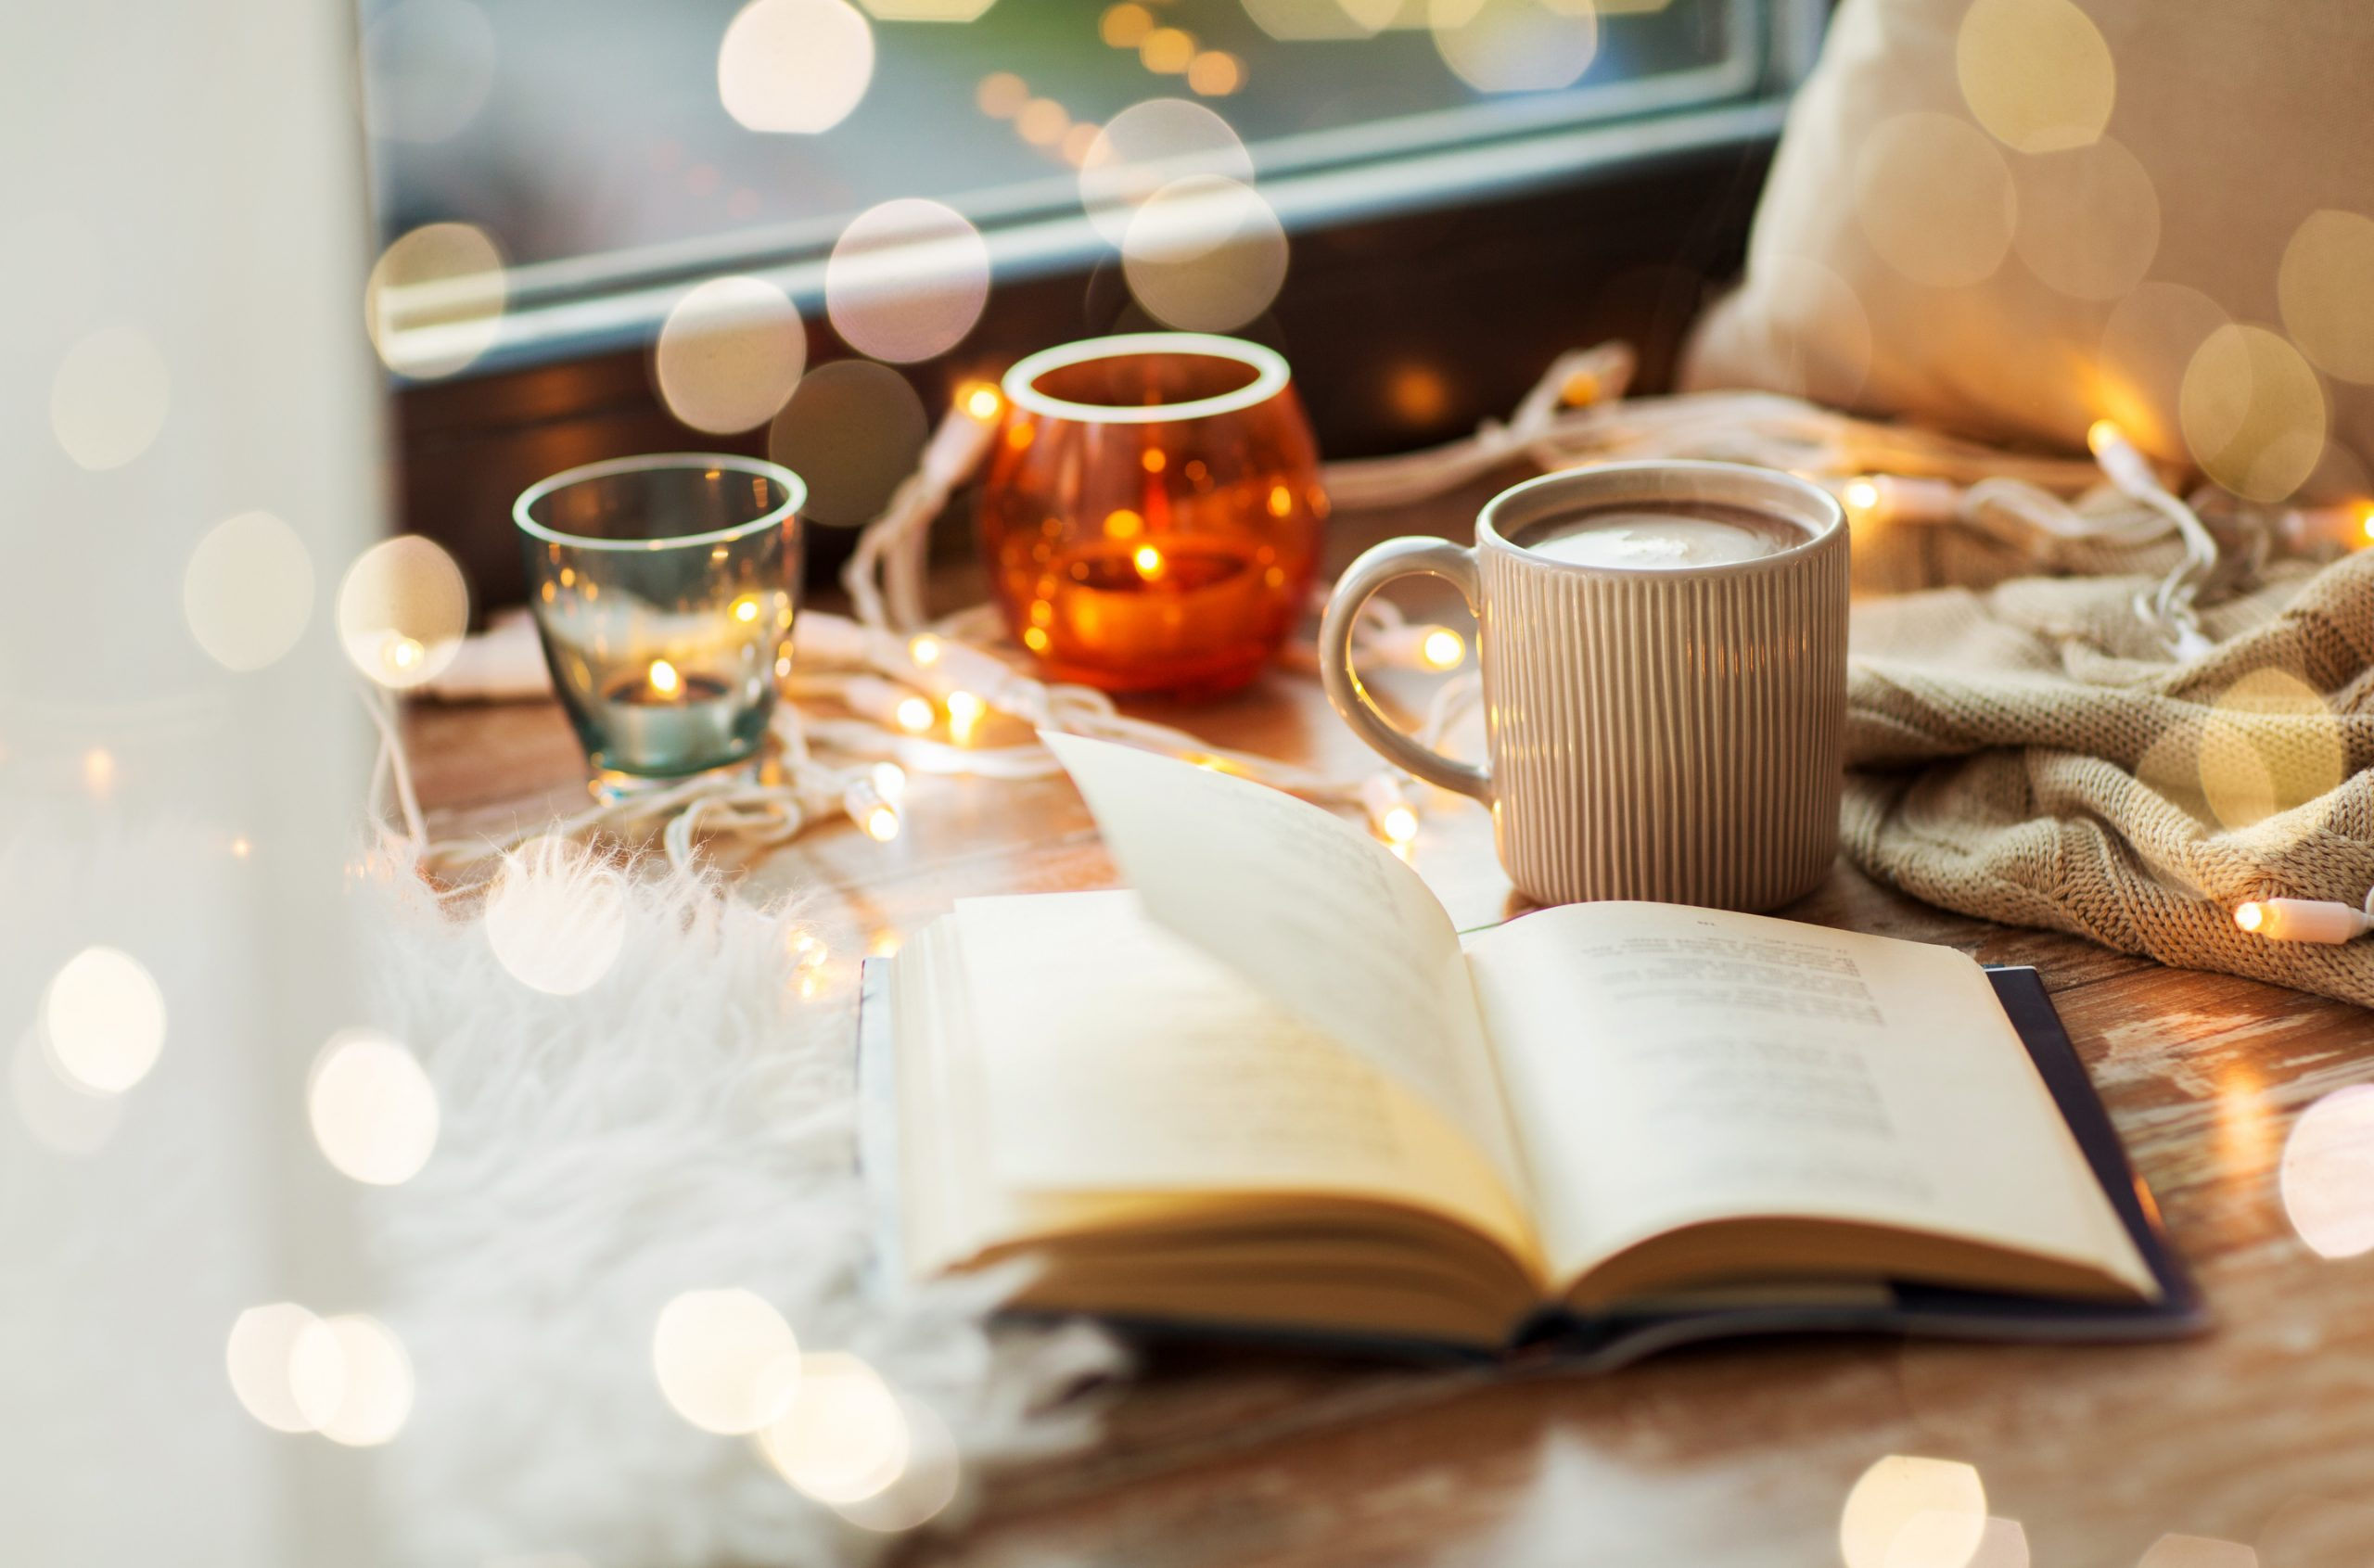 A book, cup of hot chocolate and candles with garland on window sill